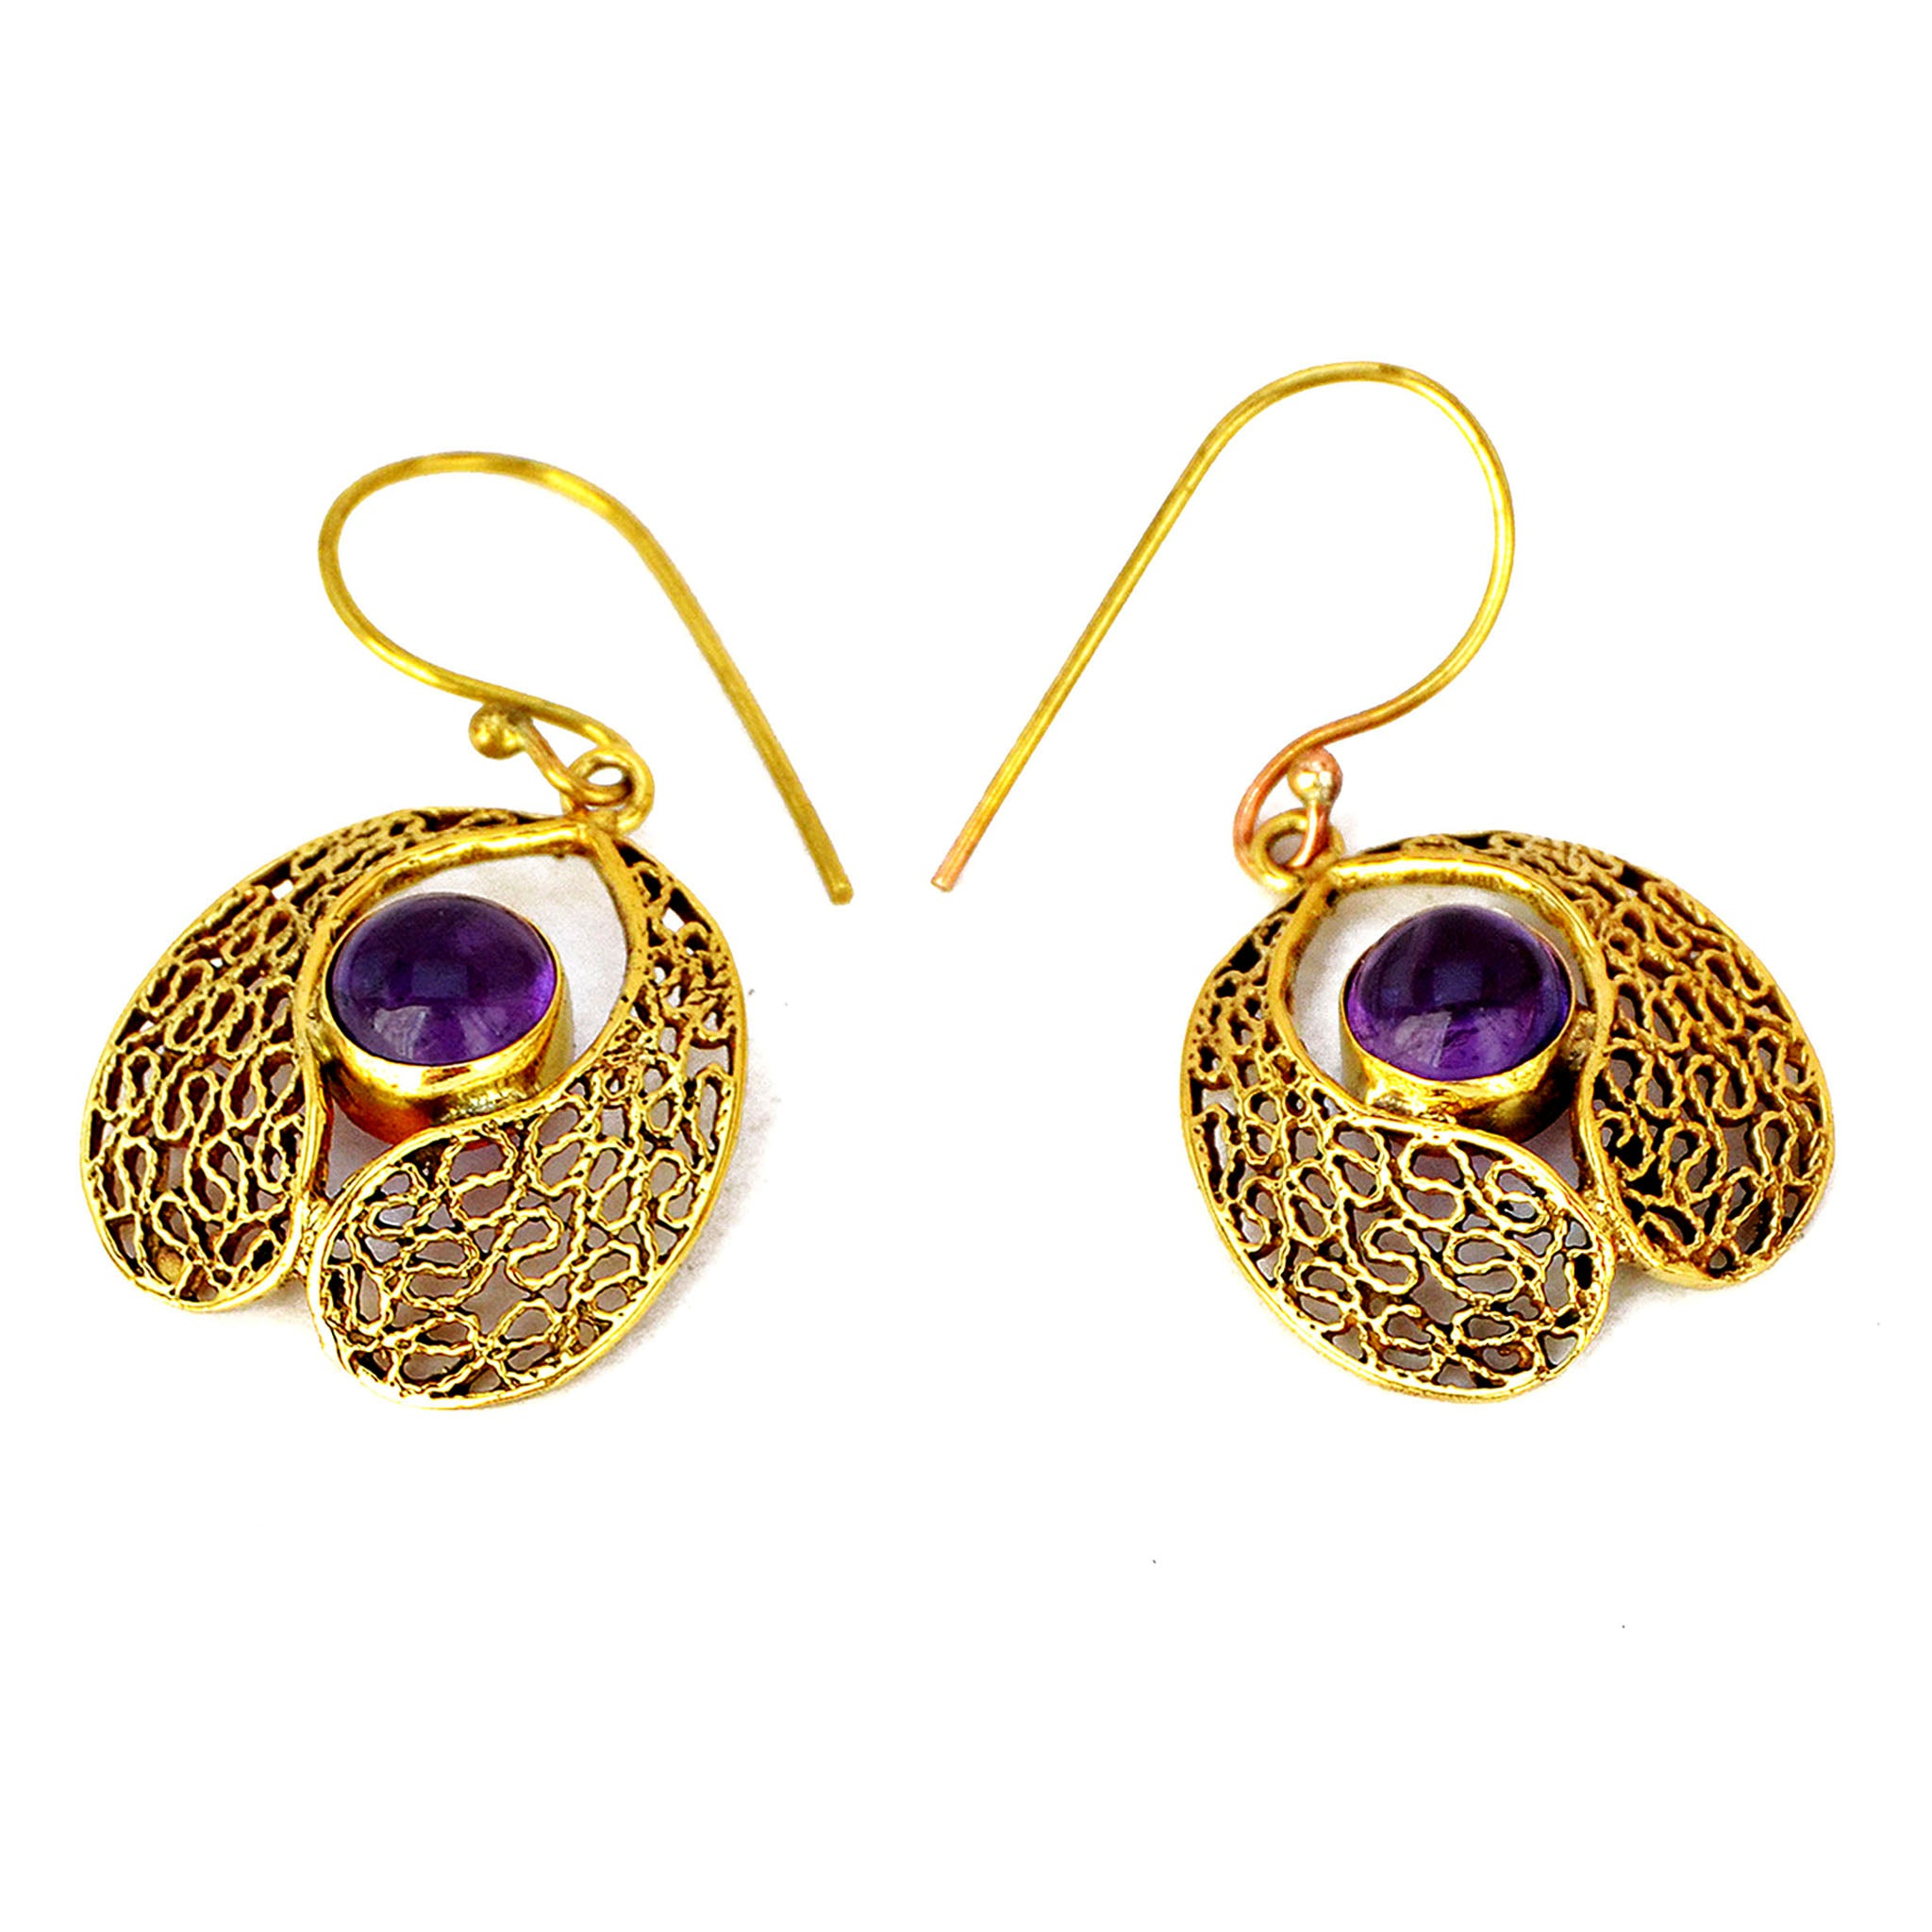 Indian filigree earrings with stones